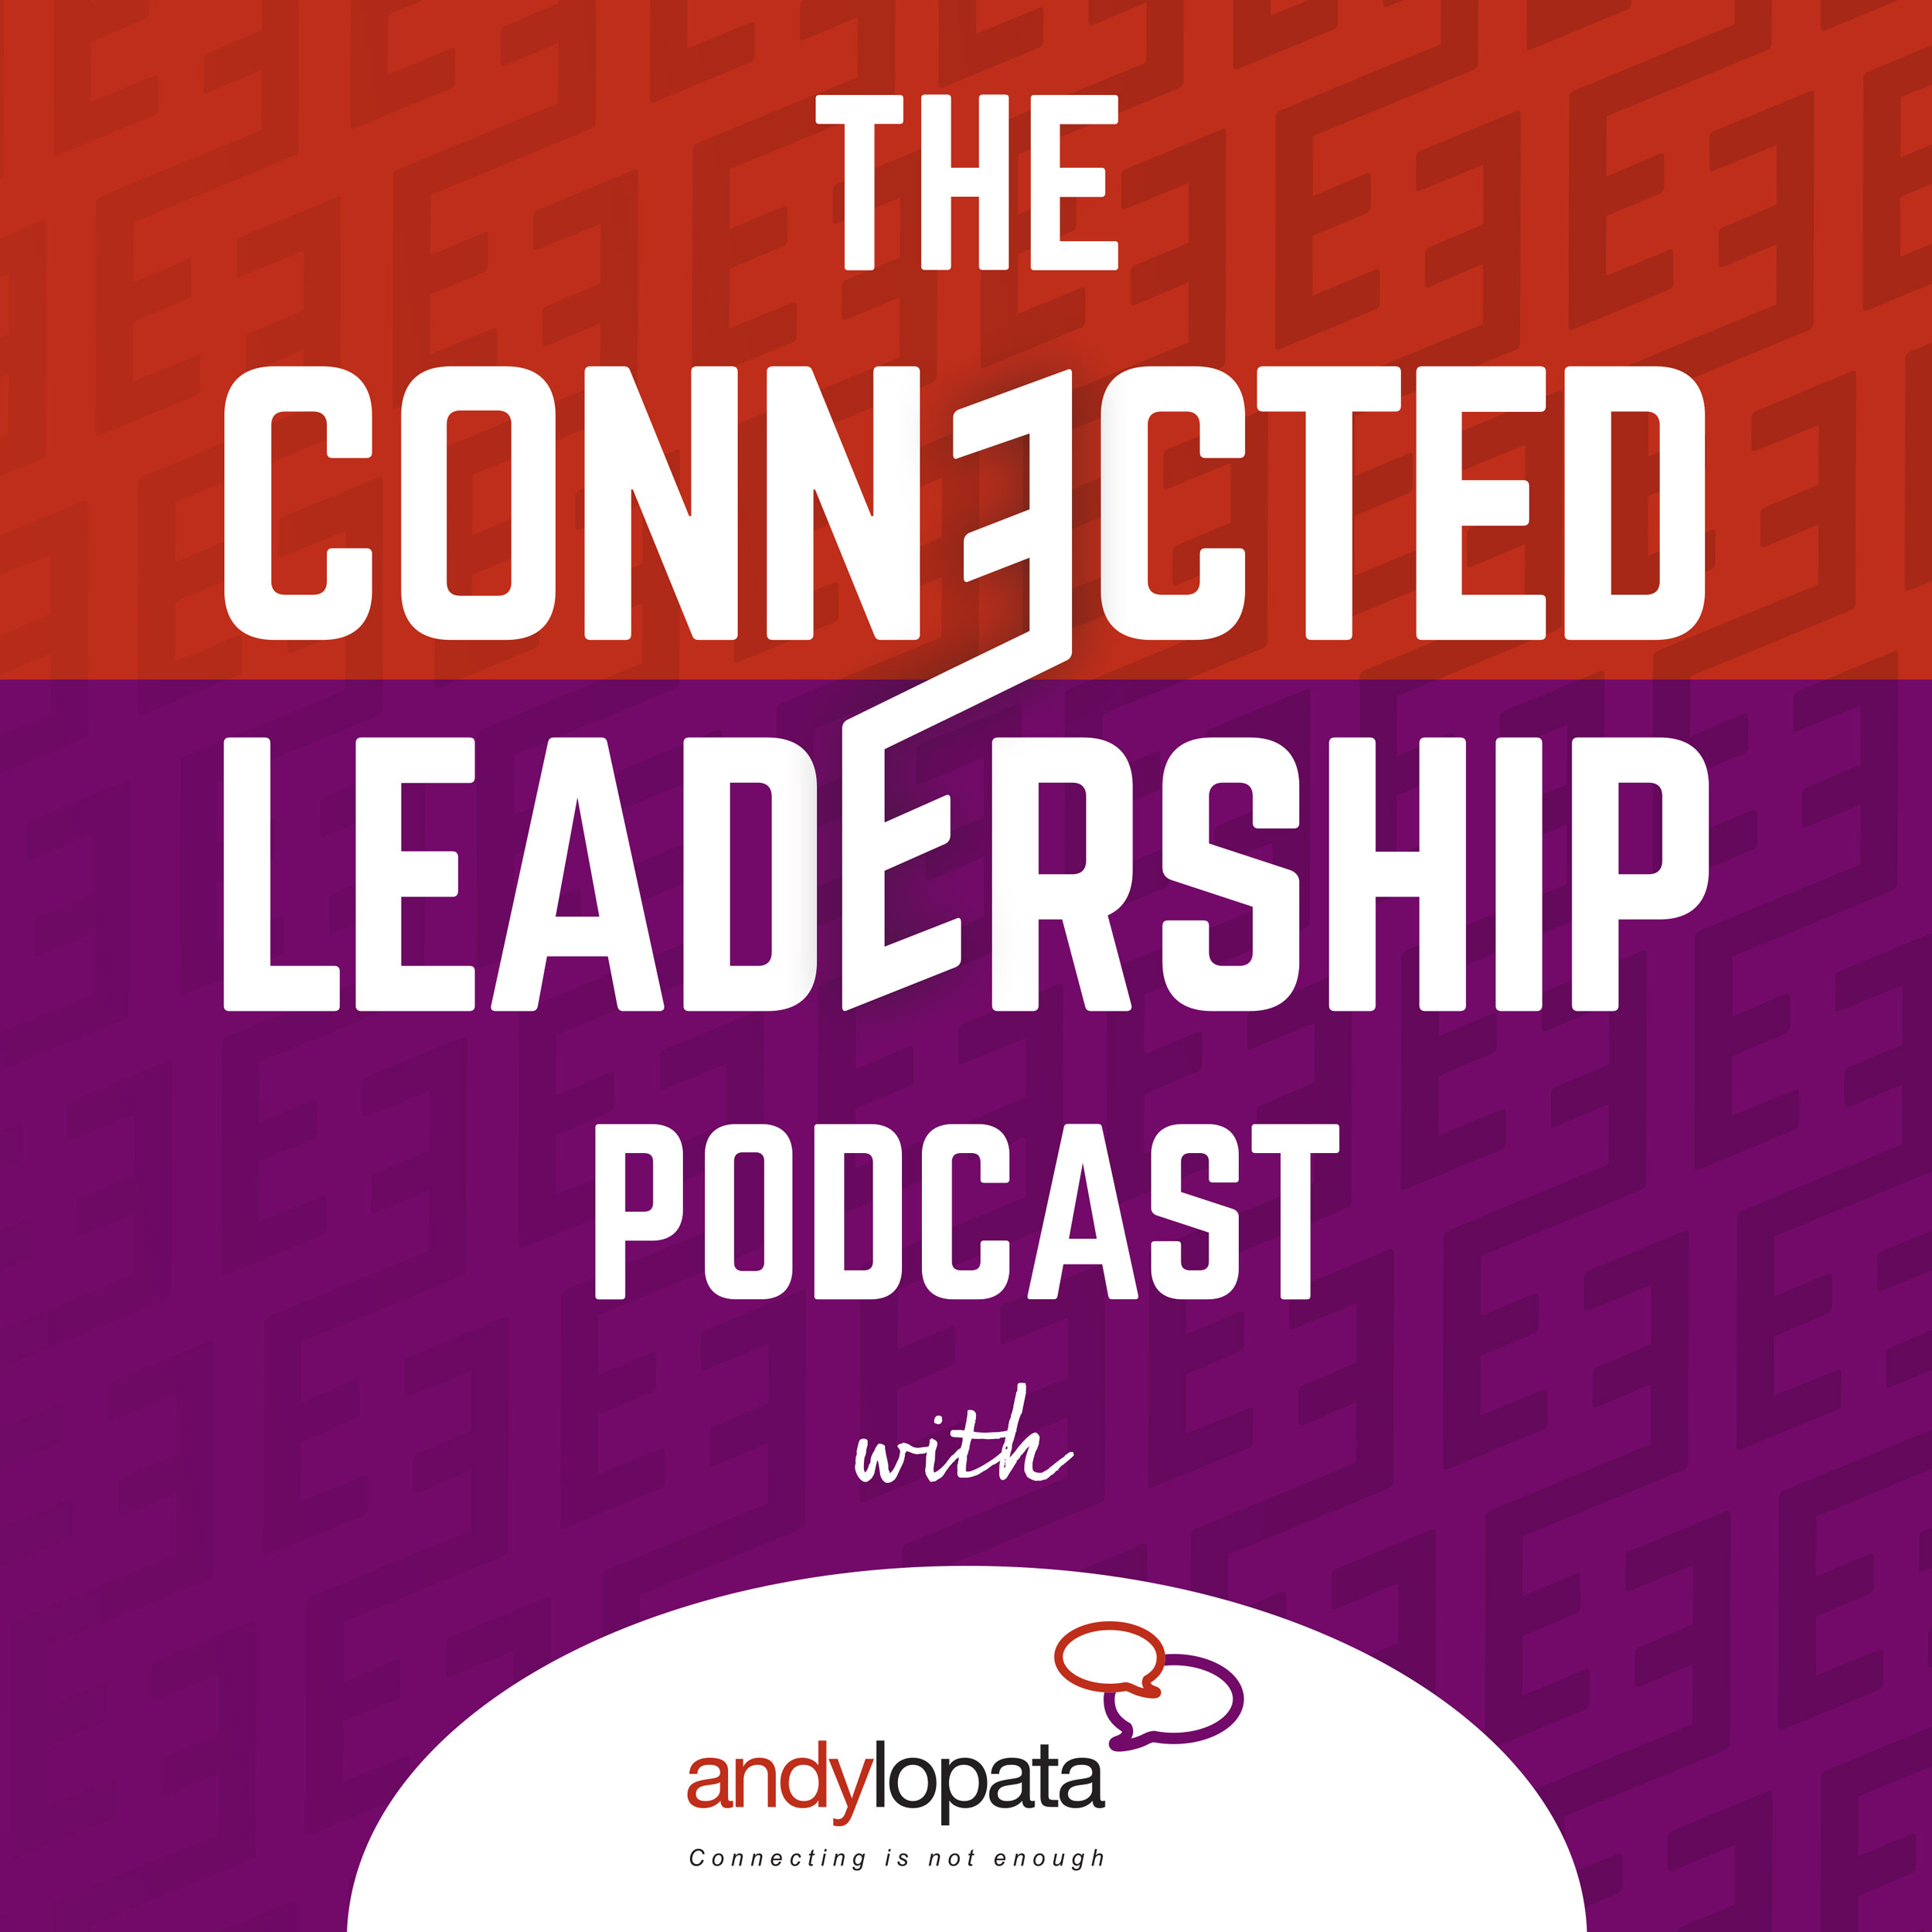 The Connected Leadership Podcast show art